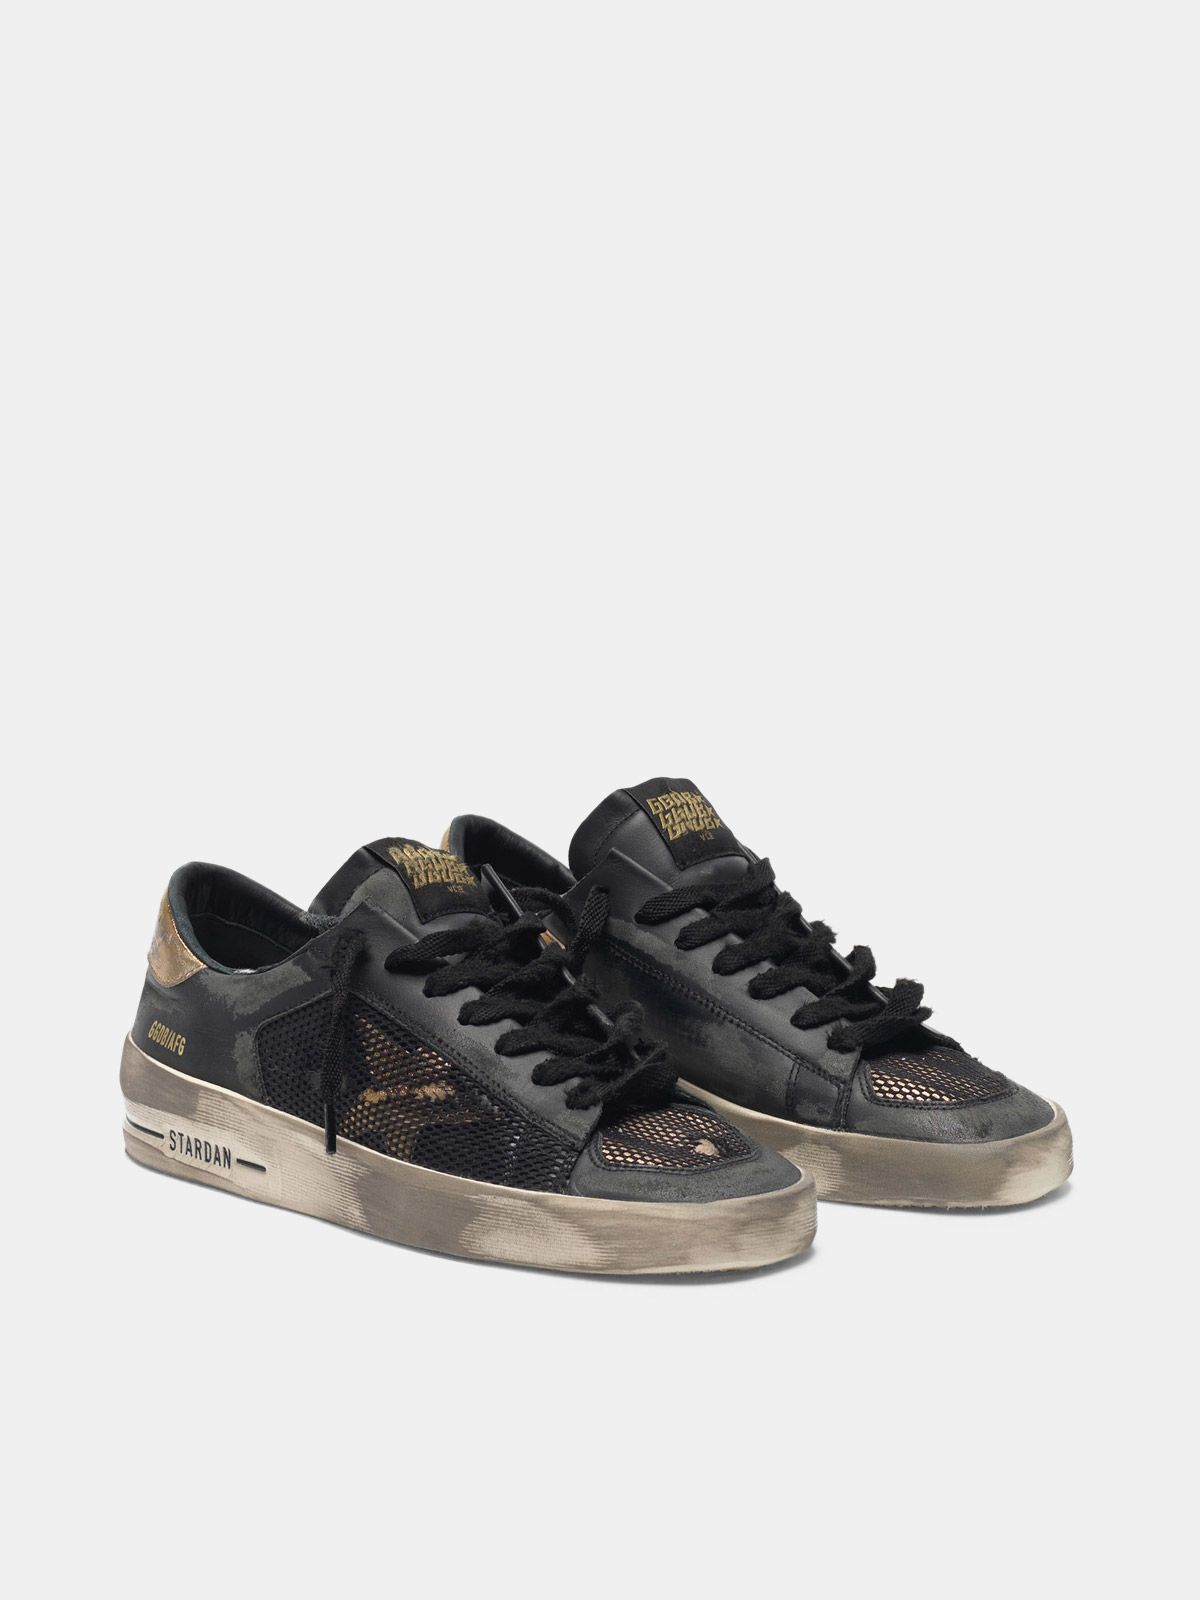 Golden Goose - Sneakers Stardan LTD black&gold distressed  in